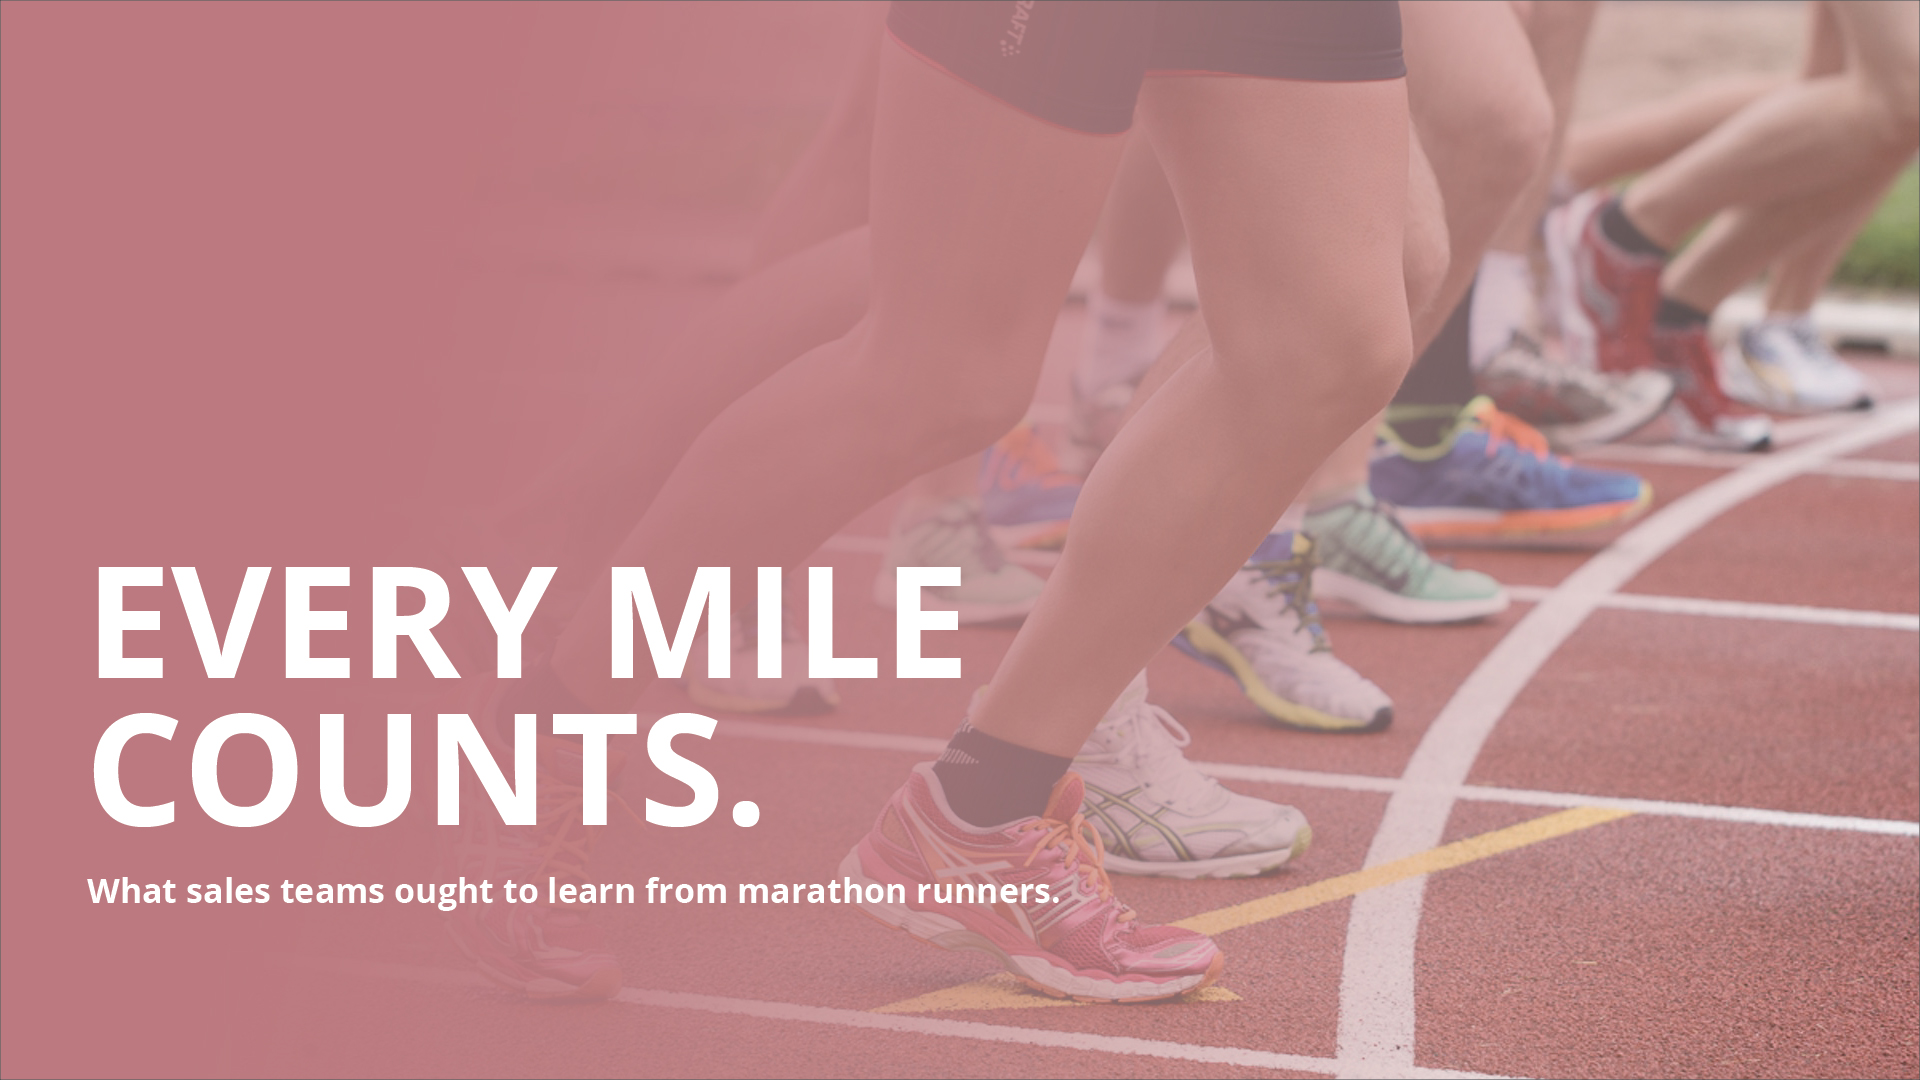 Every mile counts